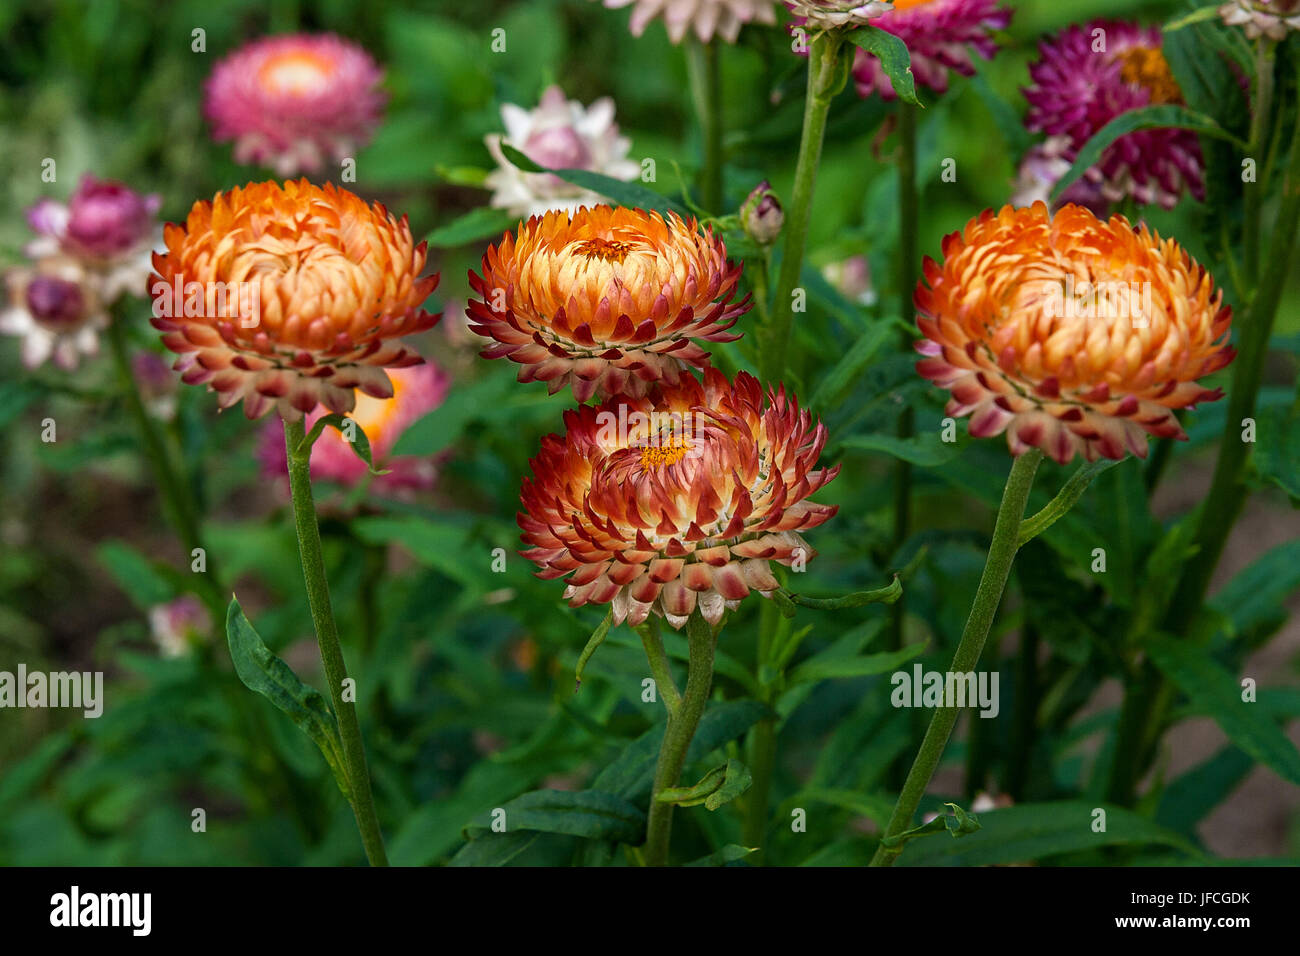 Helichrysum or straw flower in outdoor garden straw flowers stock helichrysum or straw flower in outdoor garden straw flowers scientific name is helichrysum bracteatum mightylinksfo